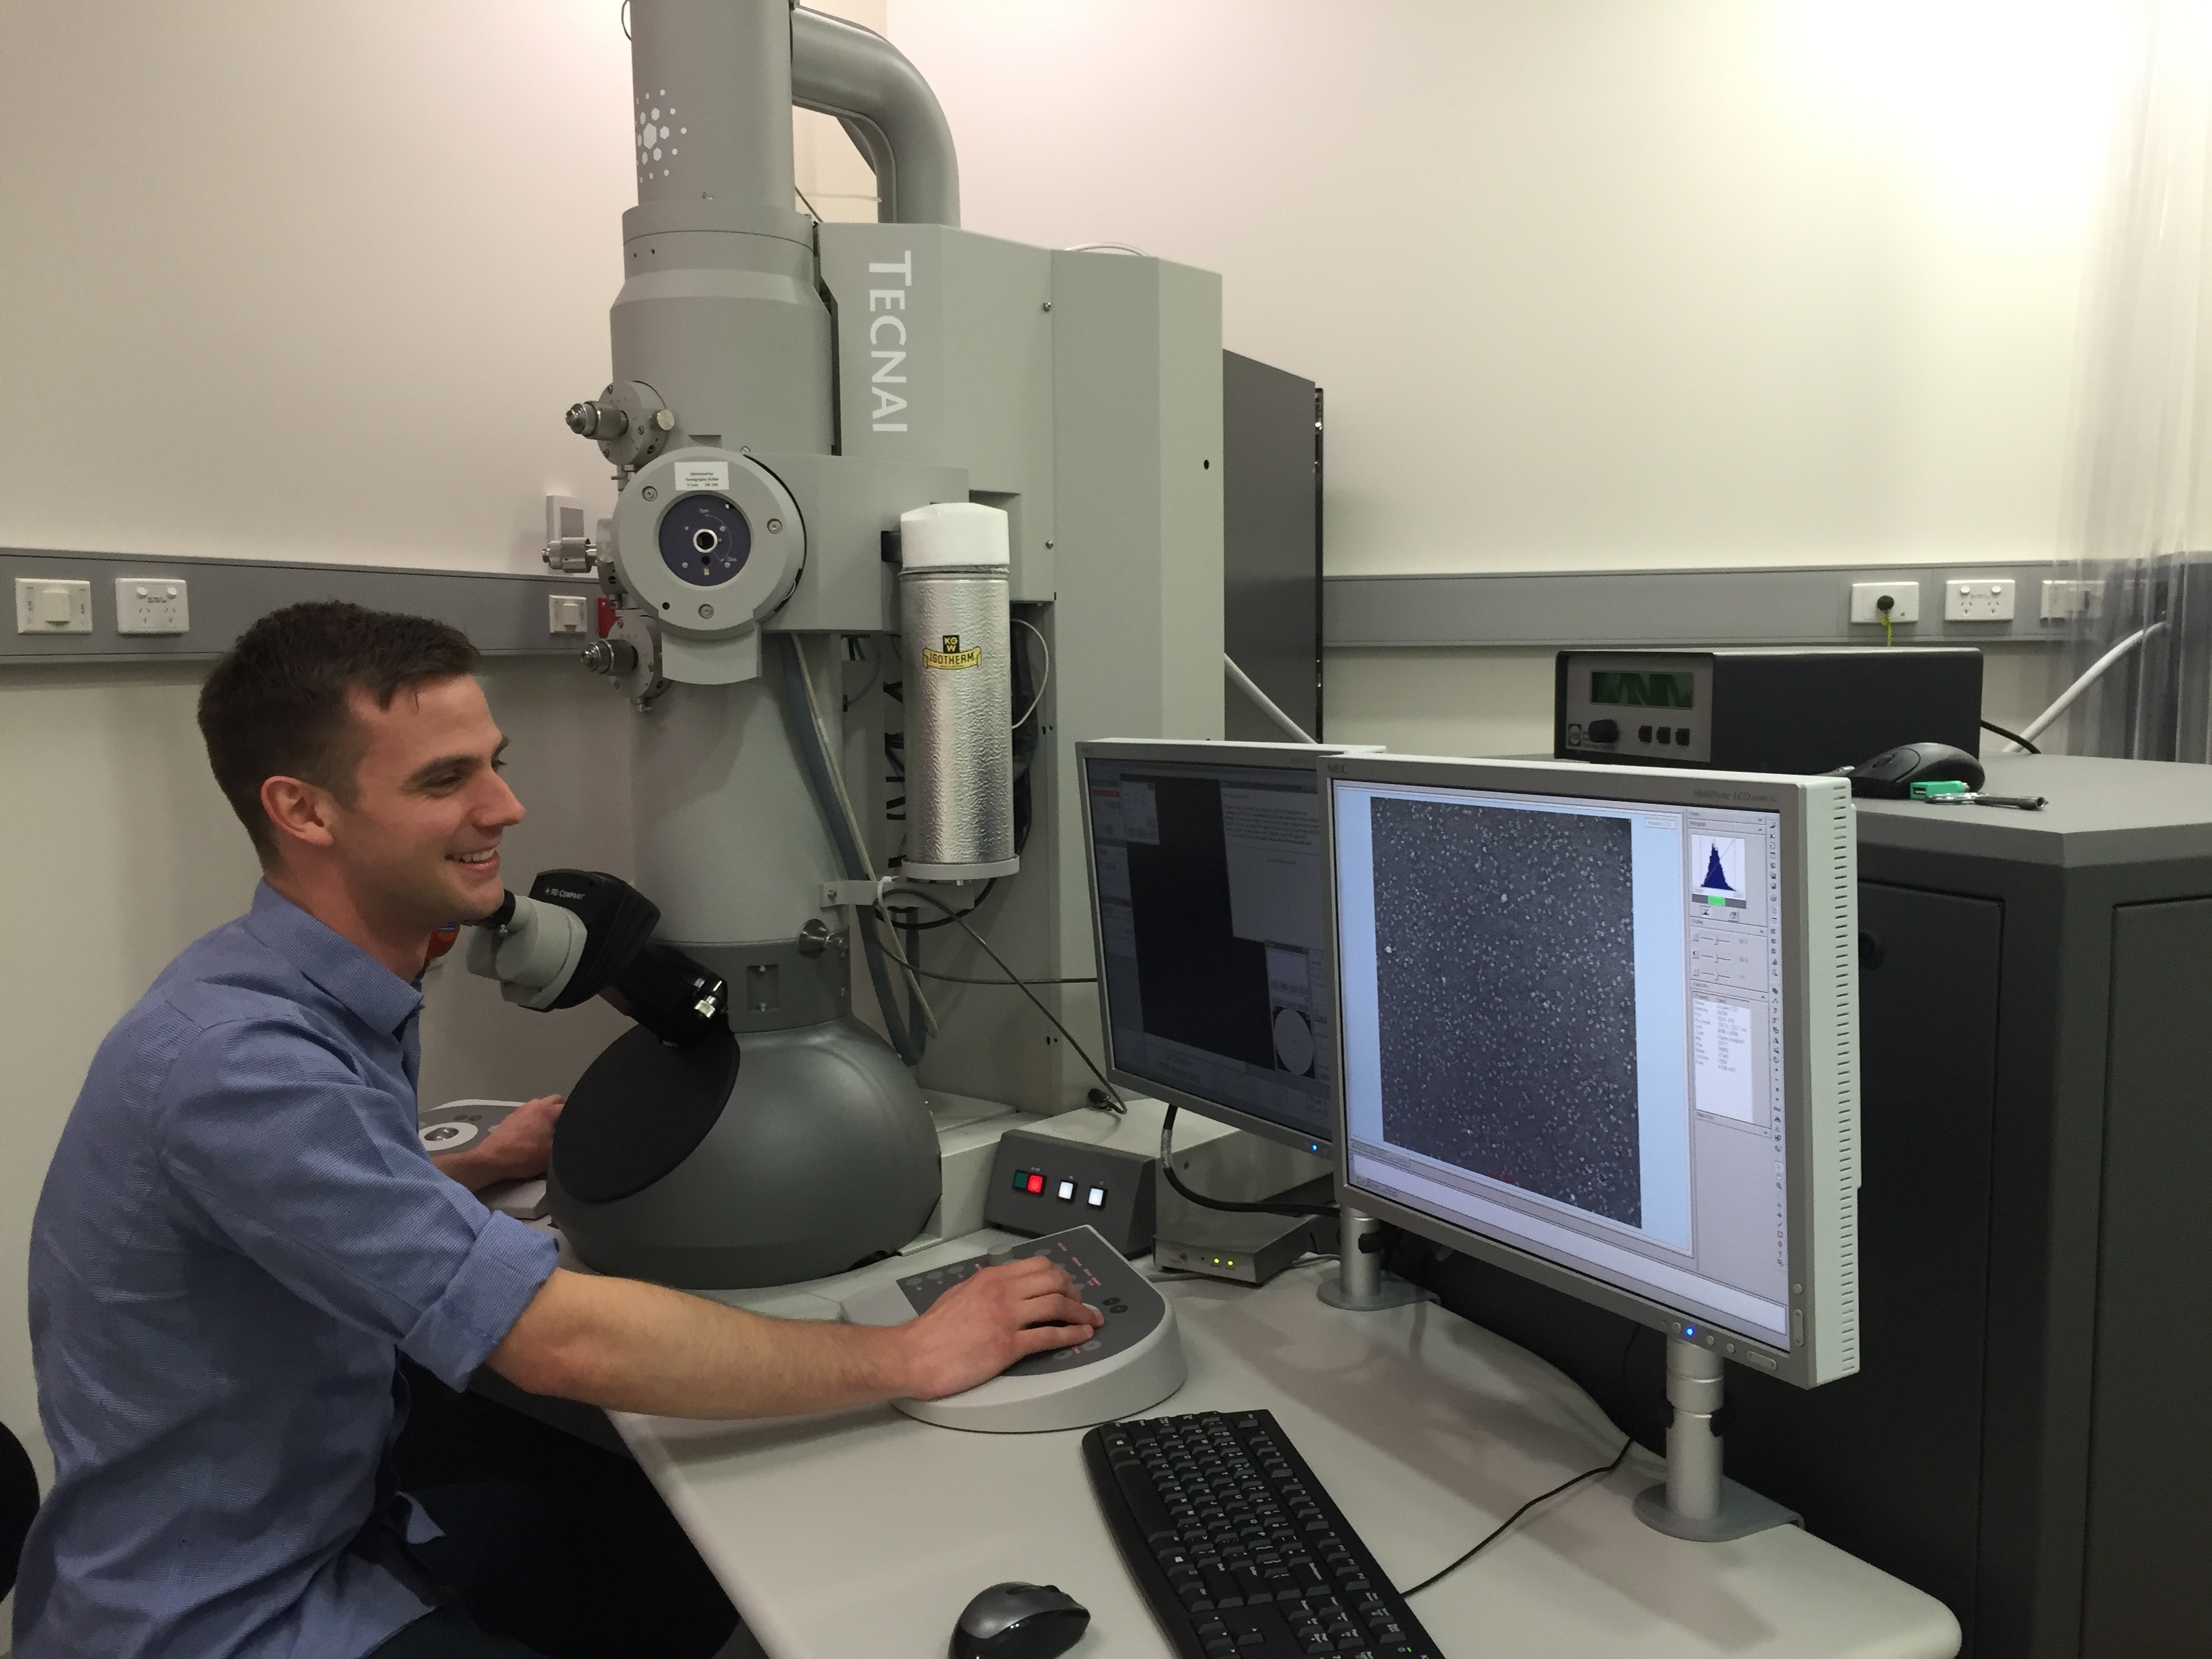 World's largest microscope company heads Down Under for R&D ...